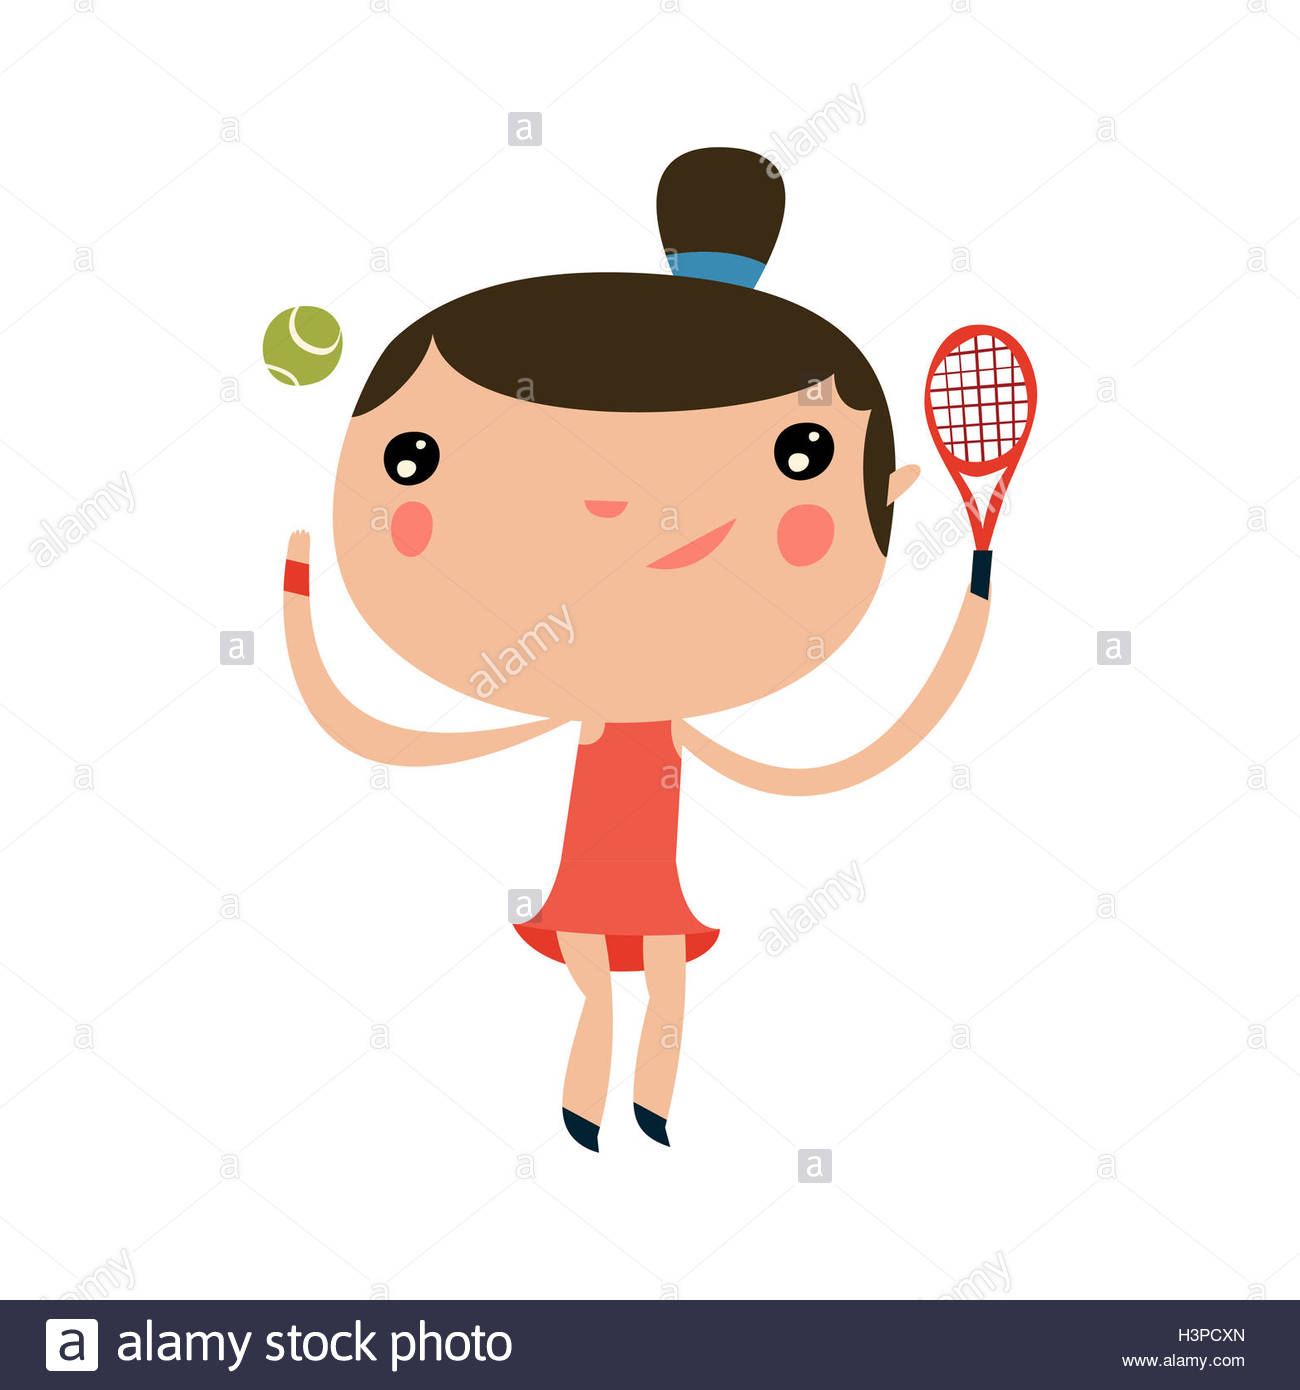 tennis player girl. cute sports character. - Stock Image